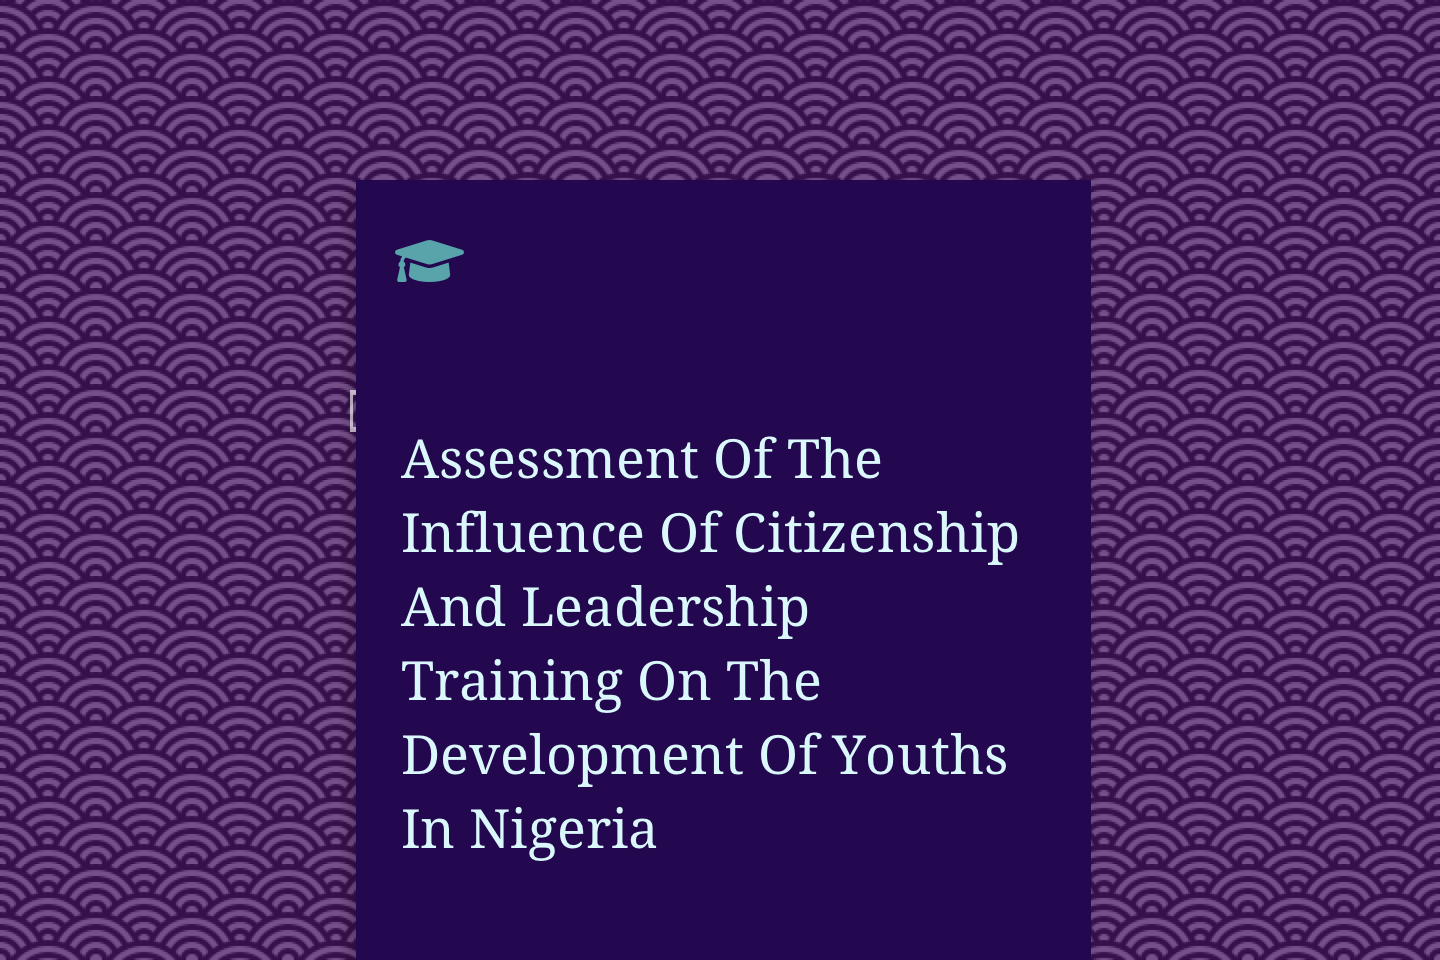 Assessment Of The Influence Of Citizenship And Leadership Training On The Development Of Youths In Nigeria